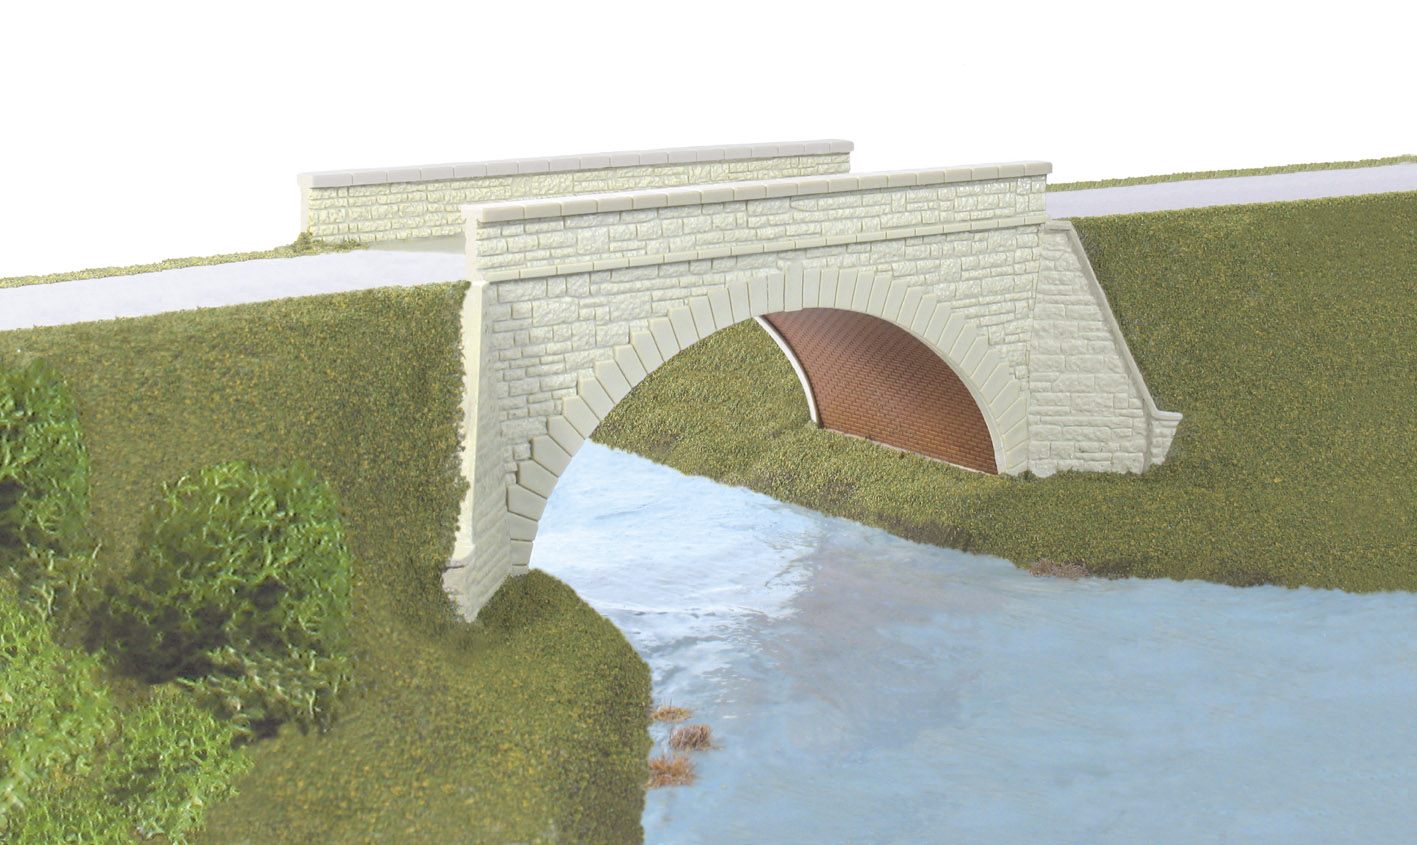 Wills SS28 Occupational Bridge & Stone Abutments, Single Track